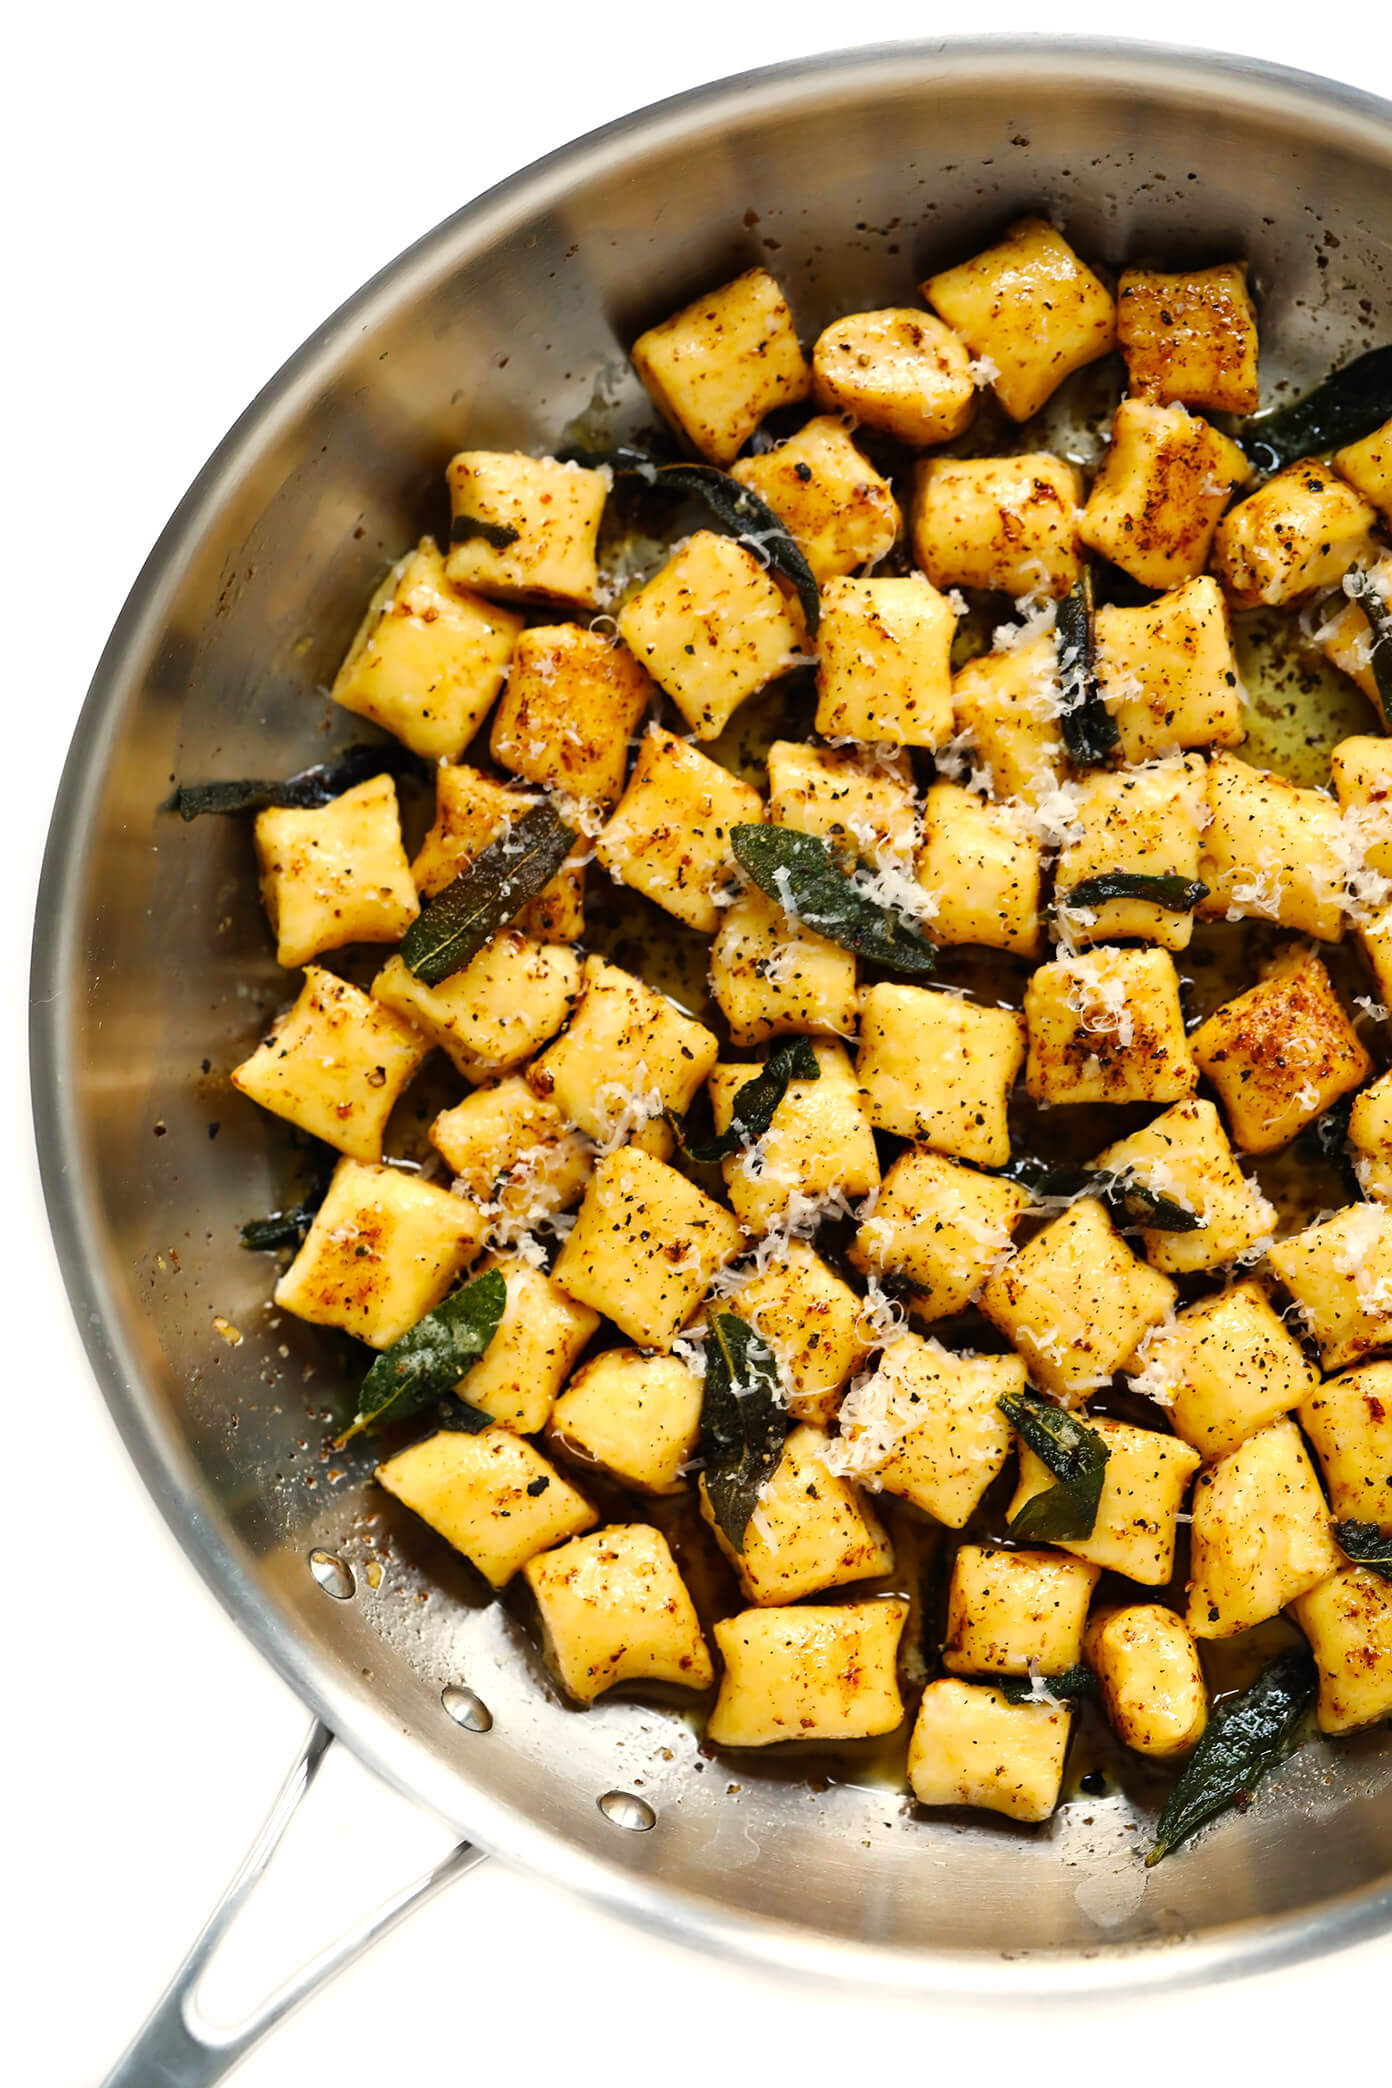 Gnocchi with brown butter sauce and sage